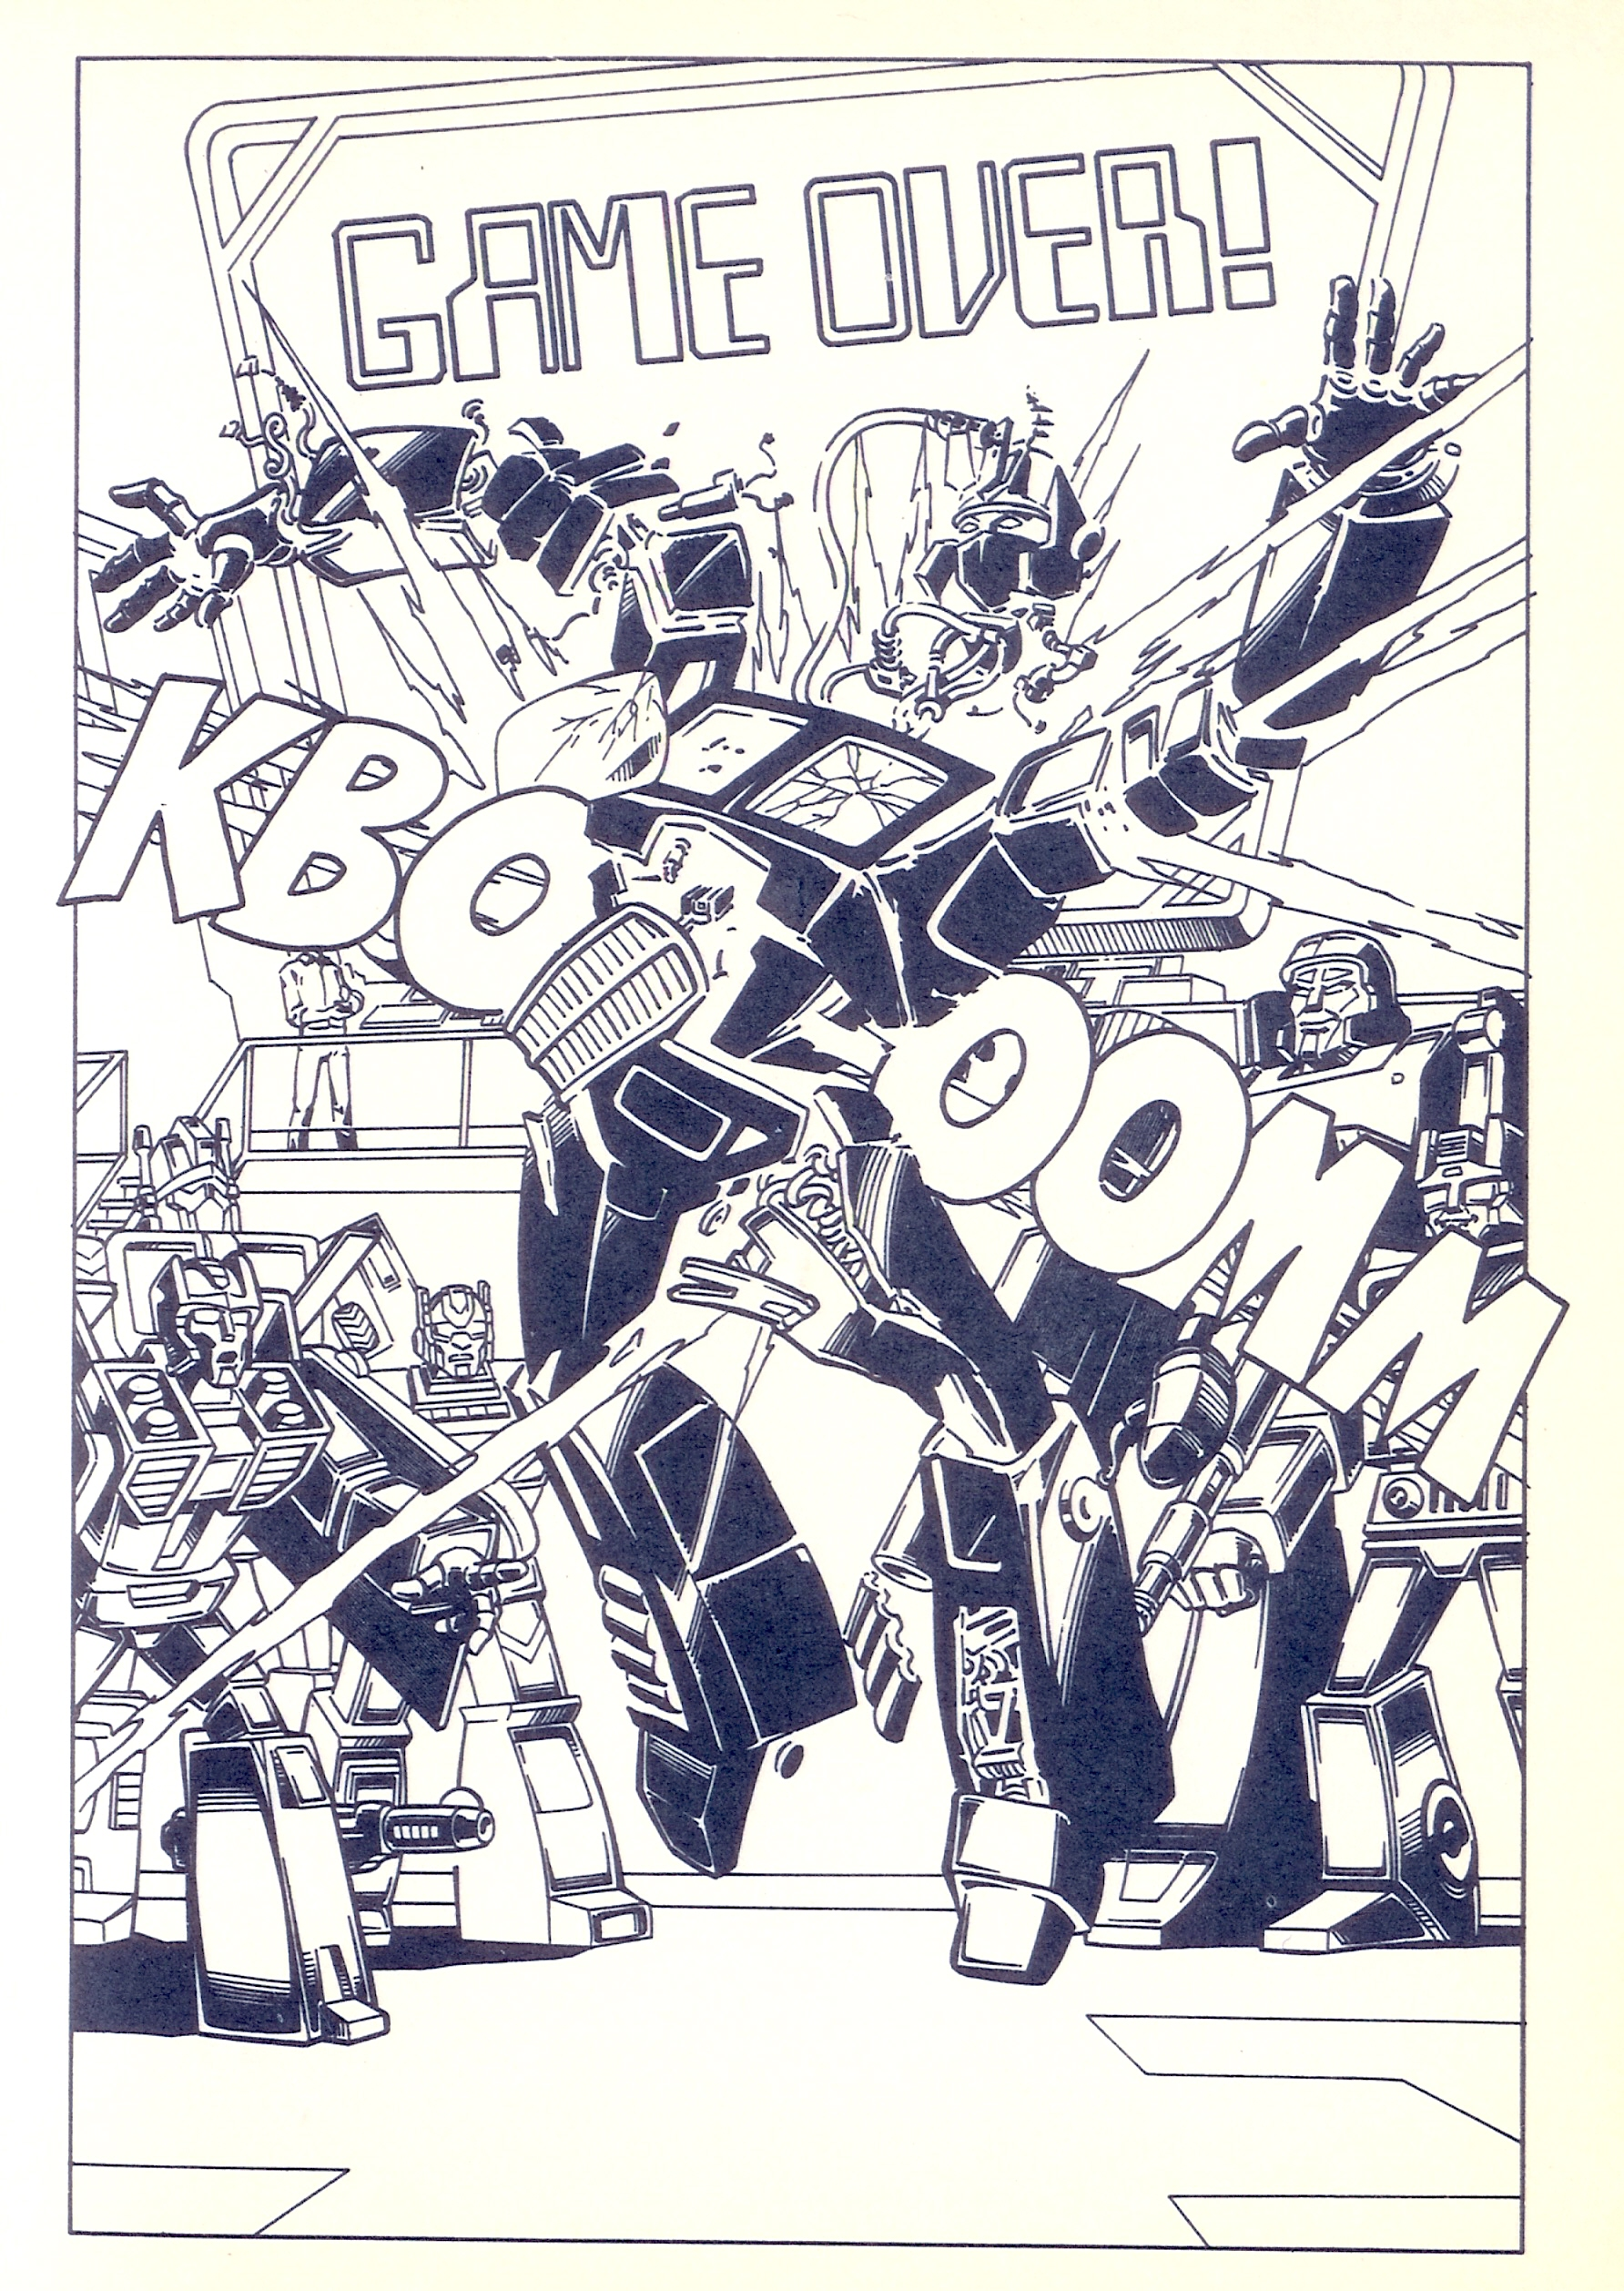 Be Nelson Yomtov! (Colorists, Tackle an Original Transformers Marvel Comics Page!)-scan0007.jpg